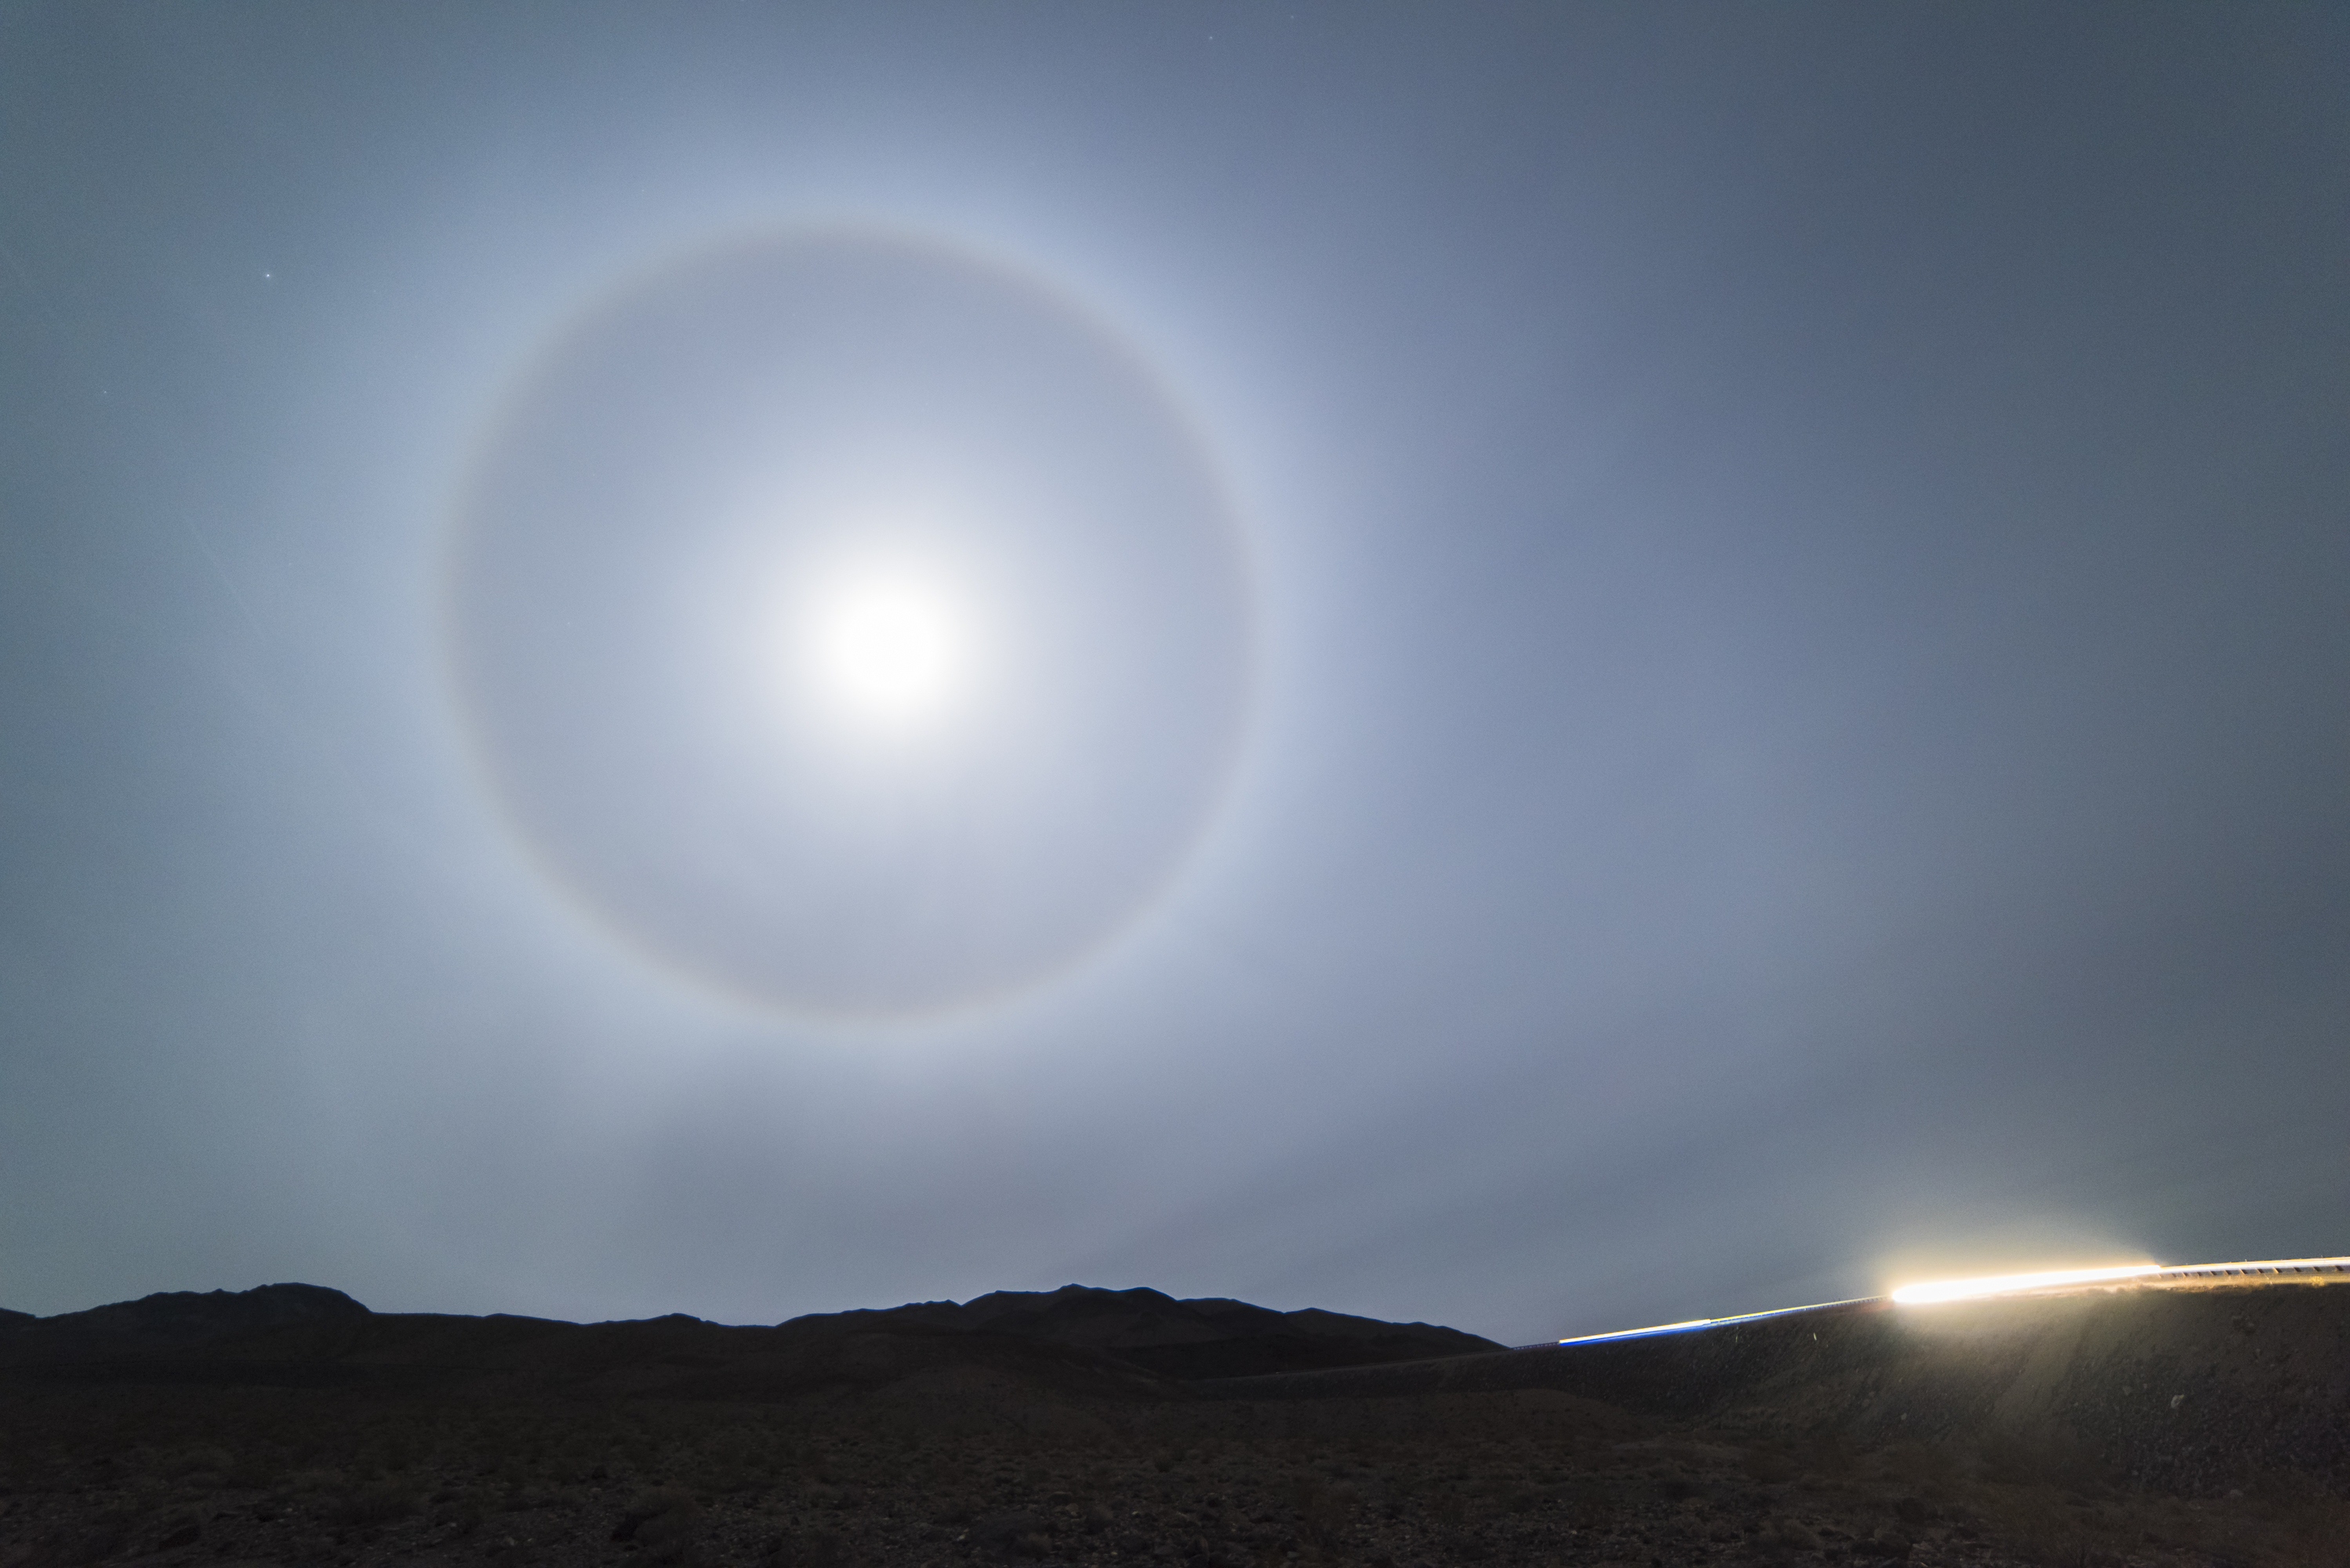 Denesa Chan Photographer Death Valley Full Moon Halo Headlights-2653 72 dpi